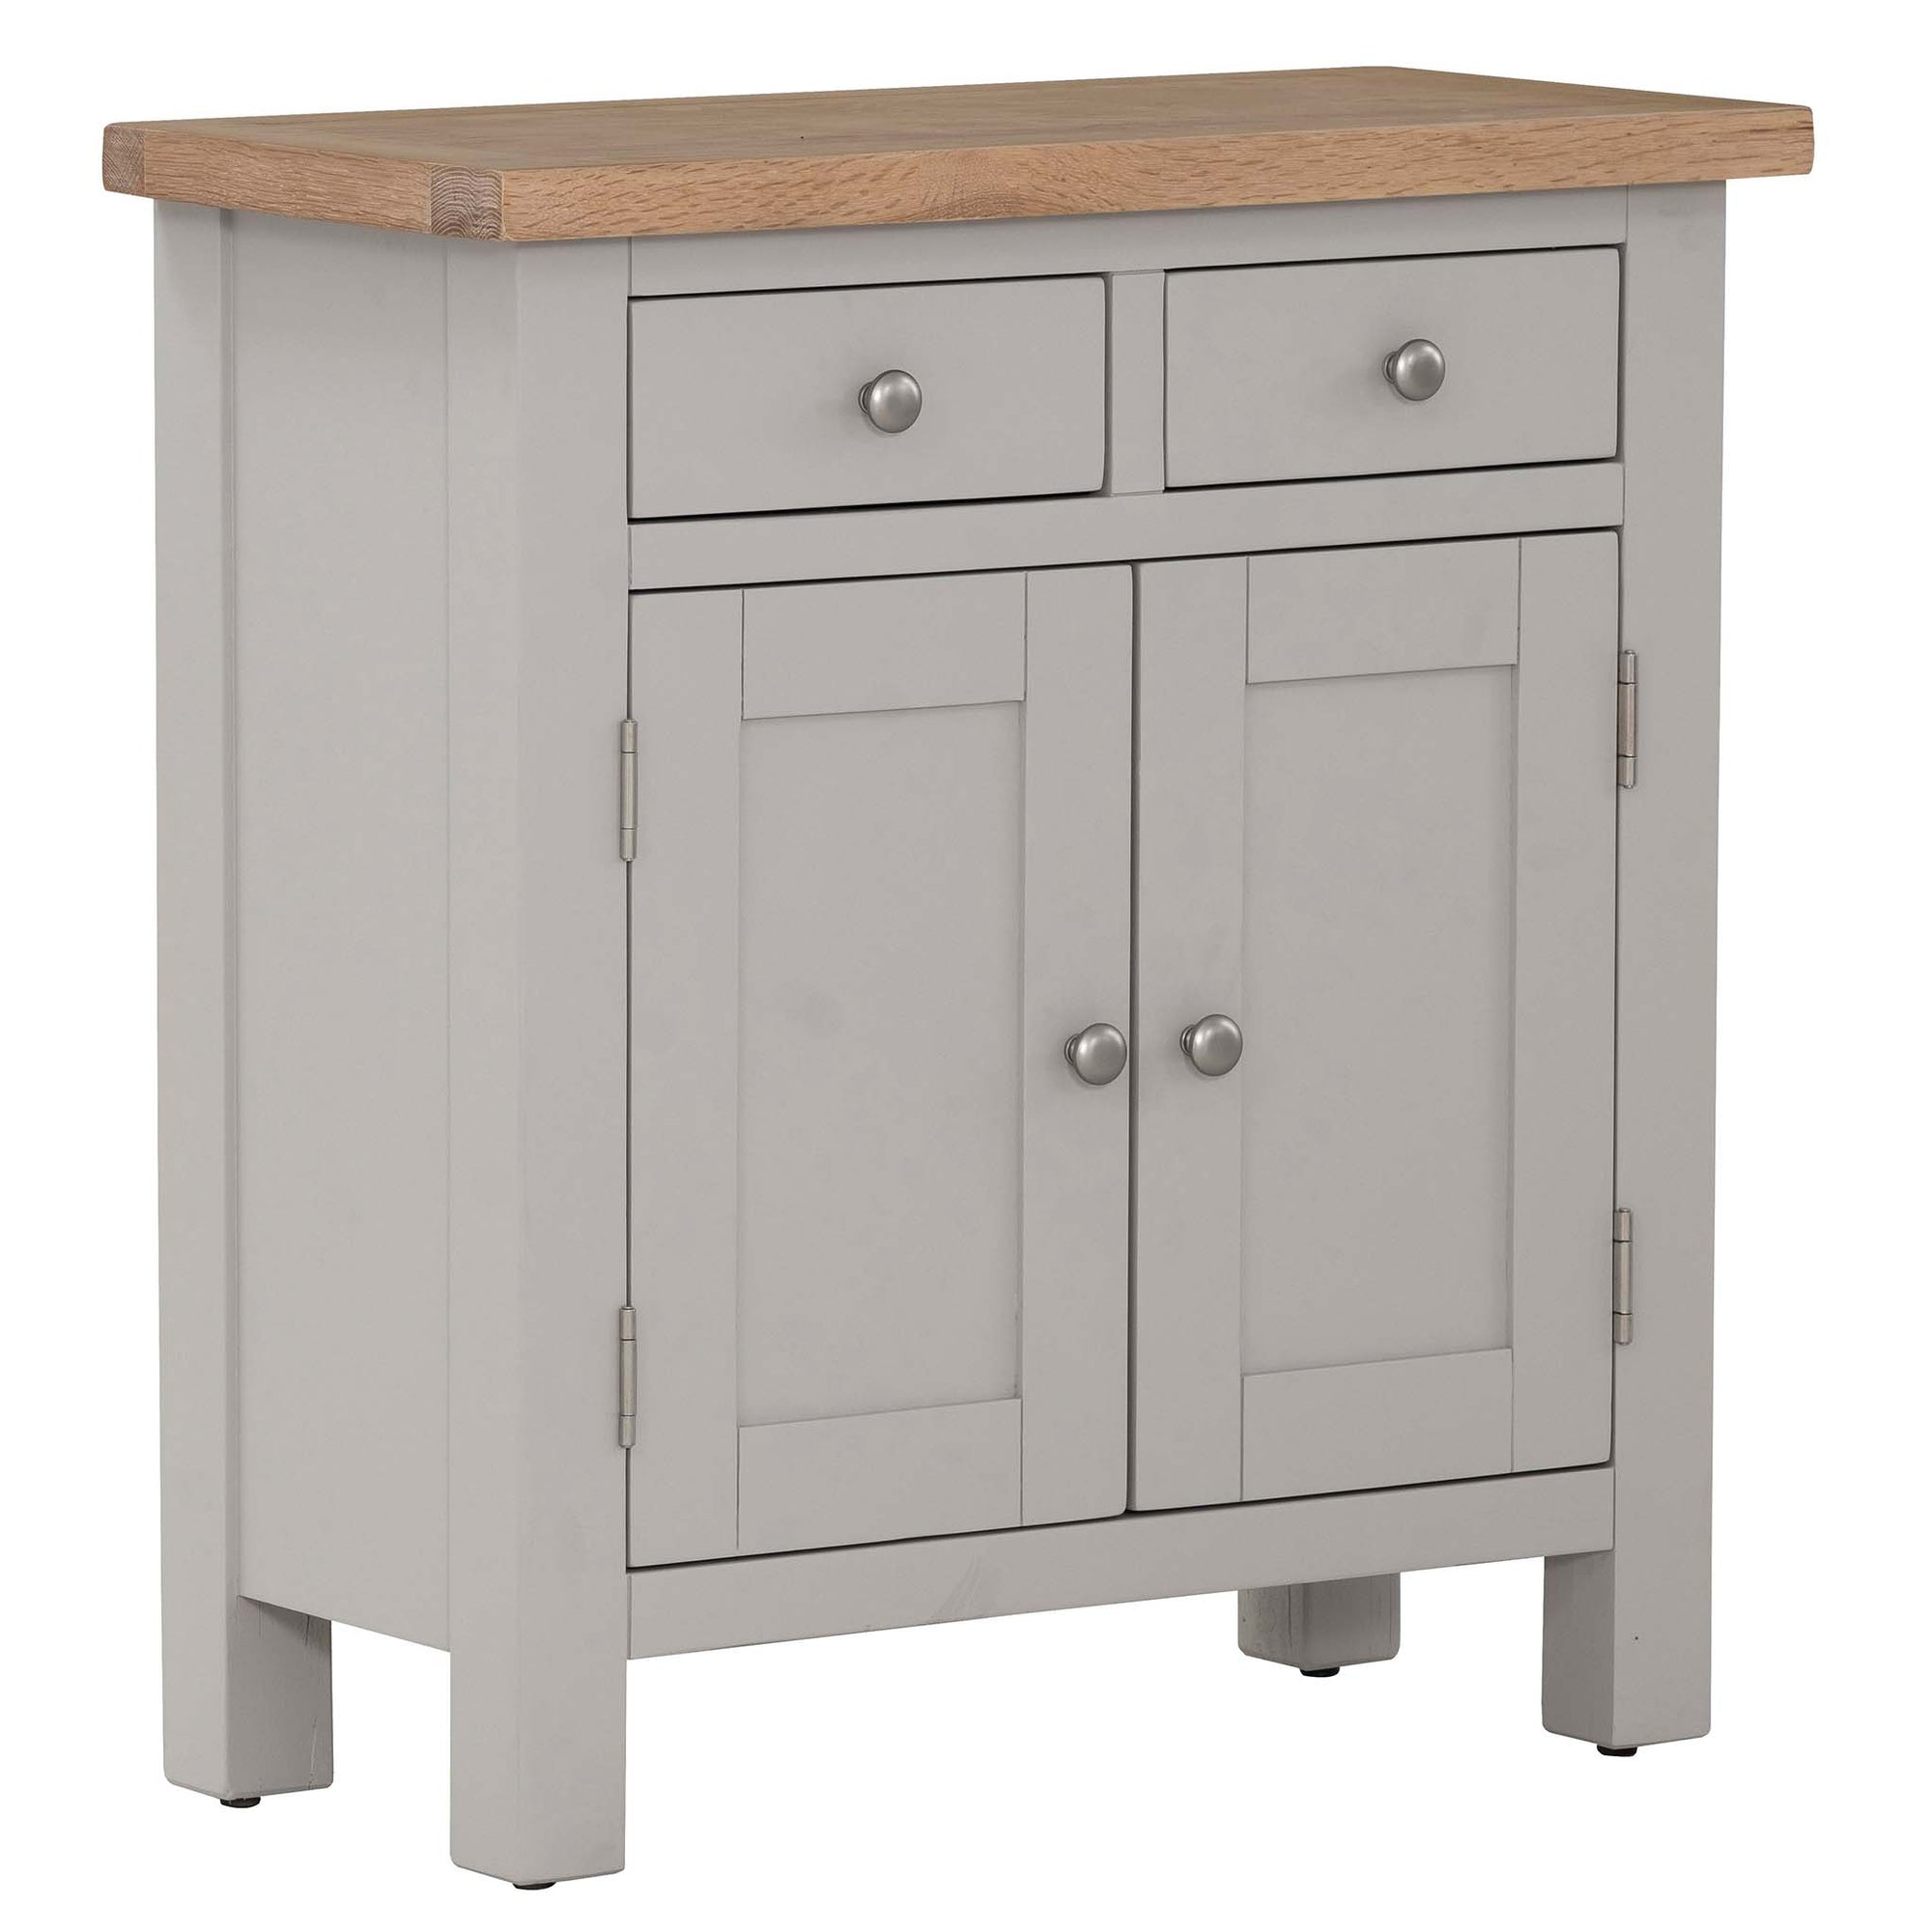 Charlestown Grey Small Sideboard with Oak Top from Roseland Furniture